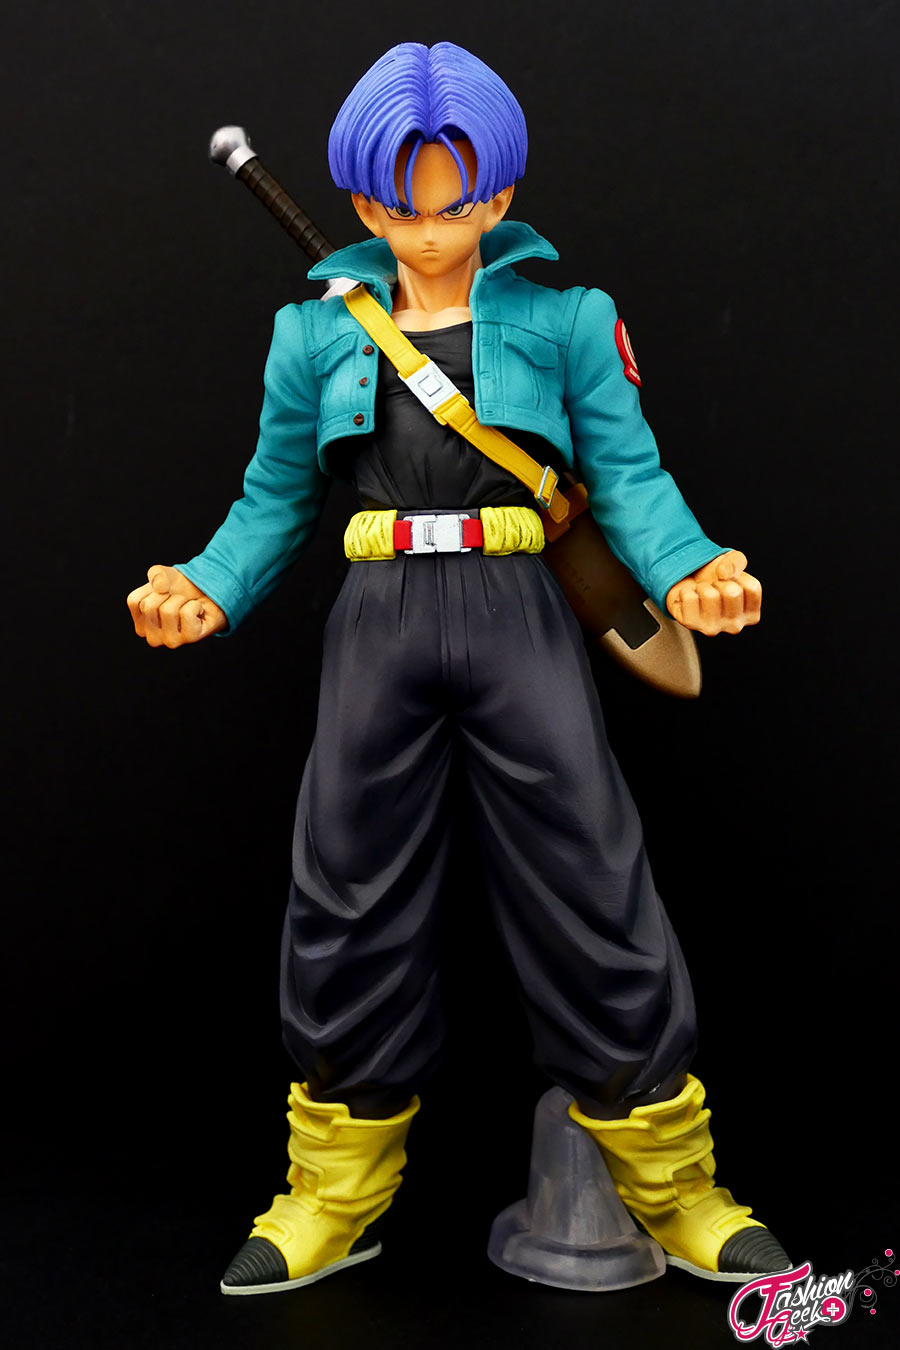 Trunks-Banpresto-figurine-2